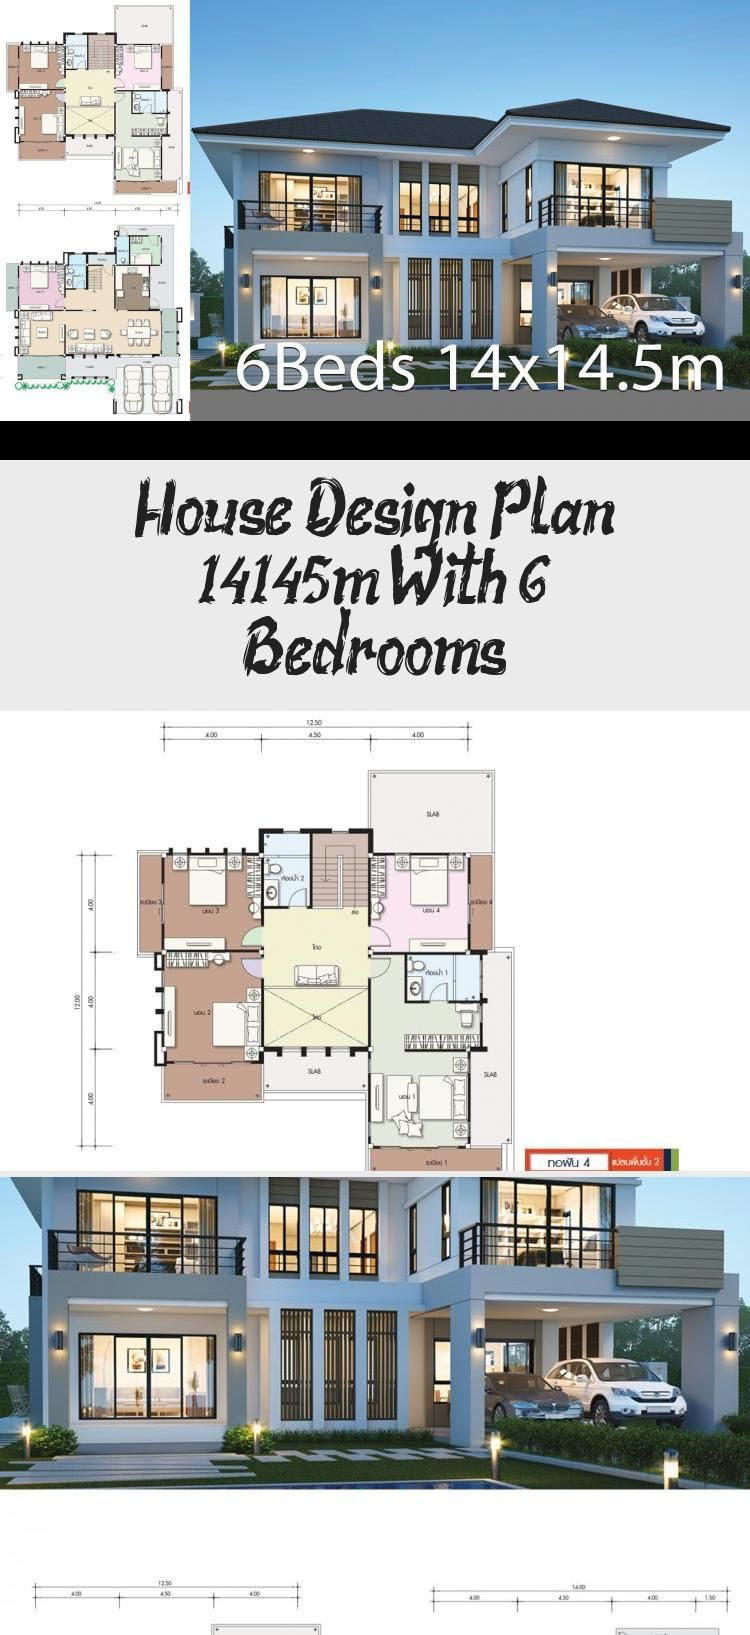 House Design Plan 14x14 5m With 6 Bedrooms Home Design With Plansearch Houseplansonestory Housepl In 2020 Courtyard House Plans Home Design Plans Beach House Plans